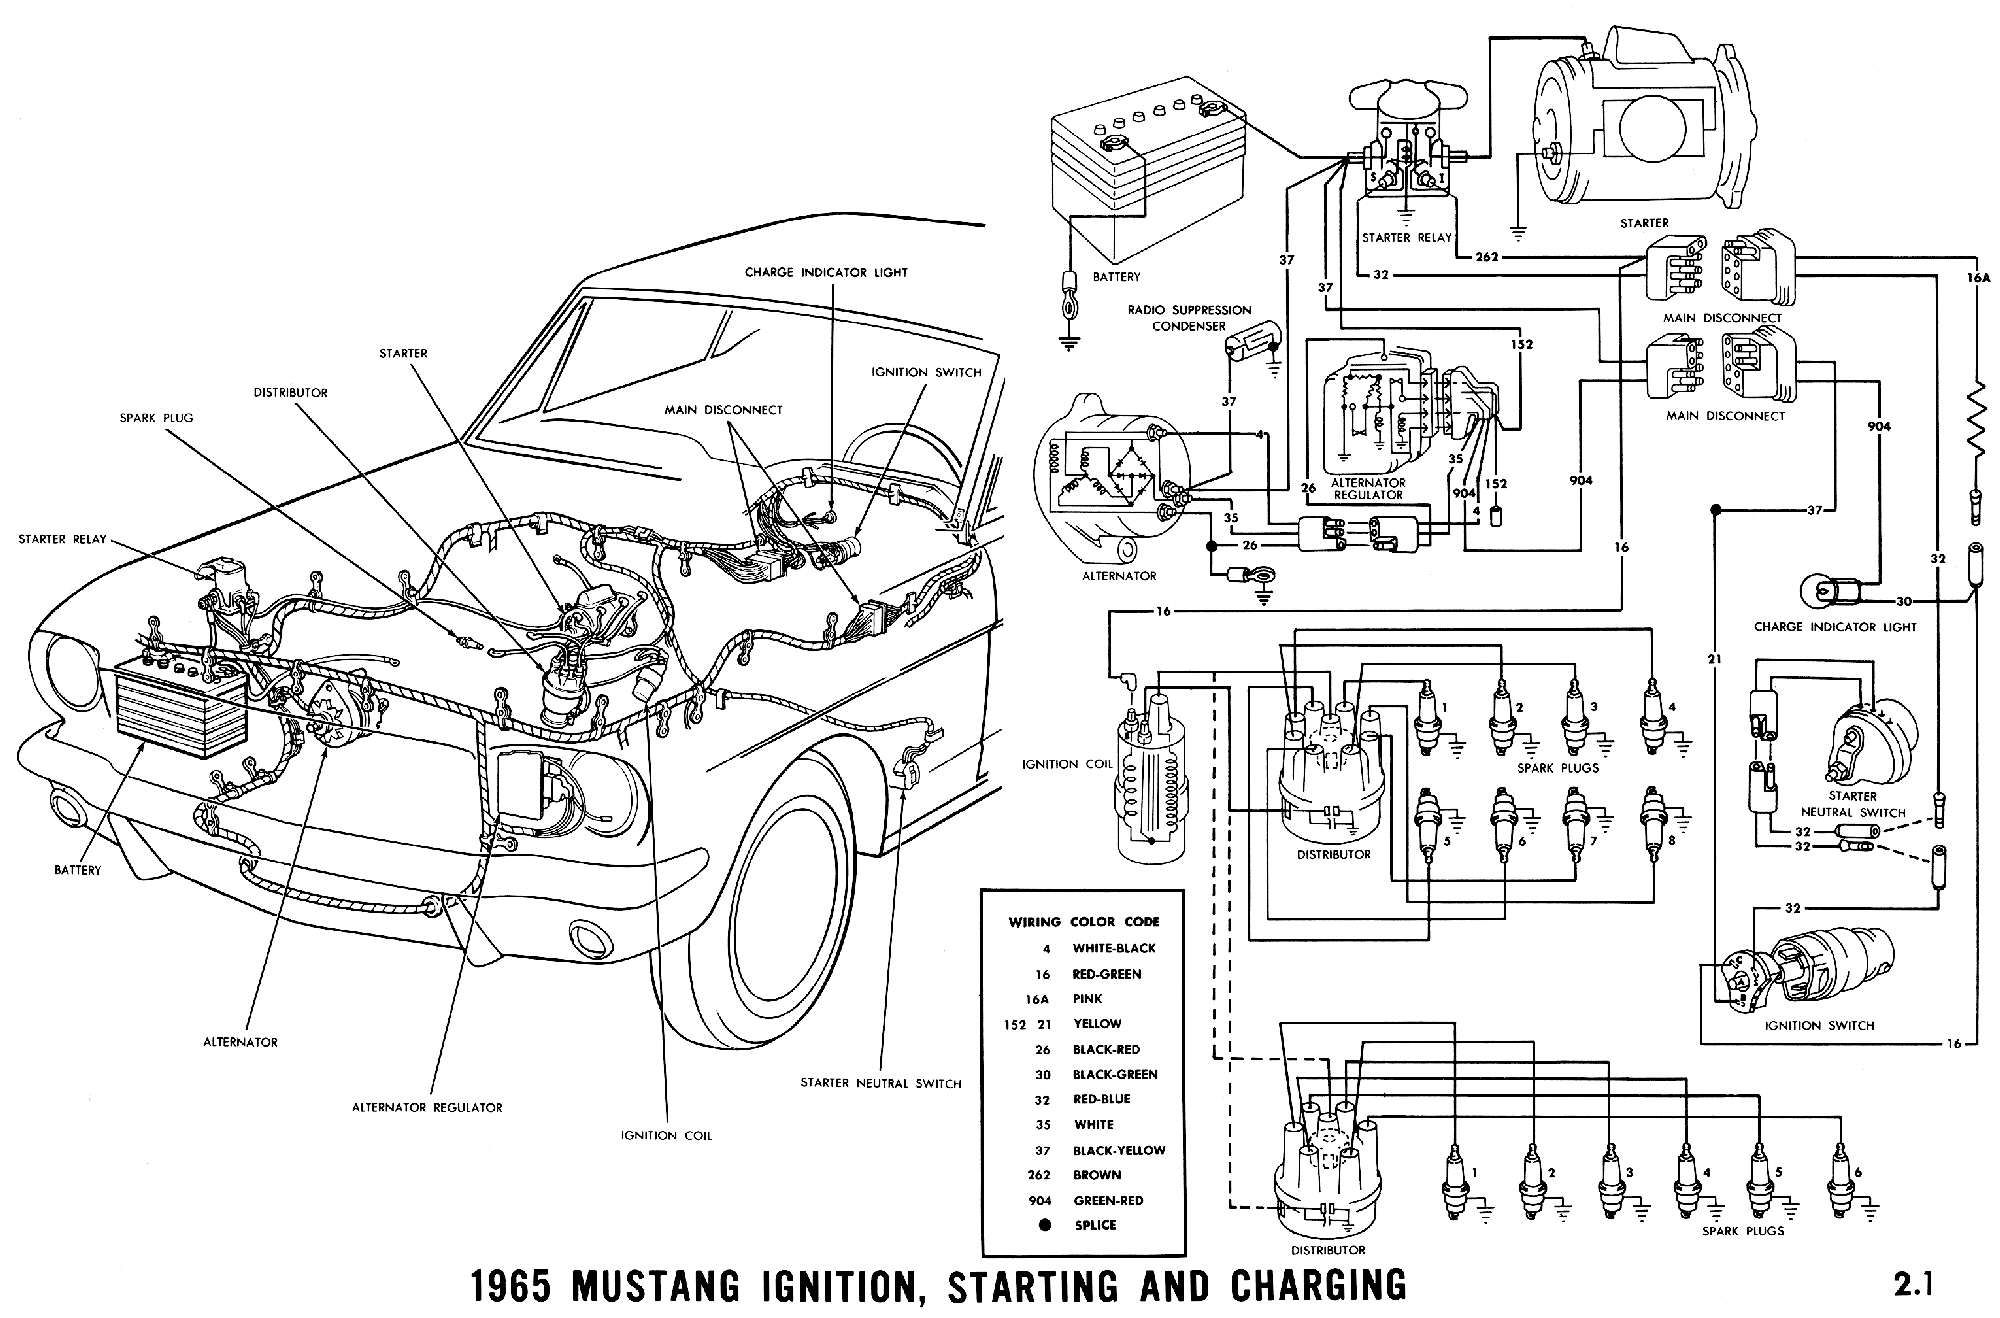 2b4c8d3809962afcbebfb7e8a60704ce 1965 mustang wiring diagrams average joe restoration mustang Ford Alternator Wiring Diagram at webbmarketing.co